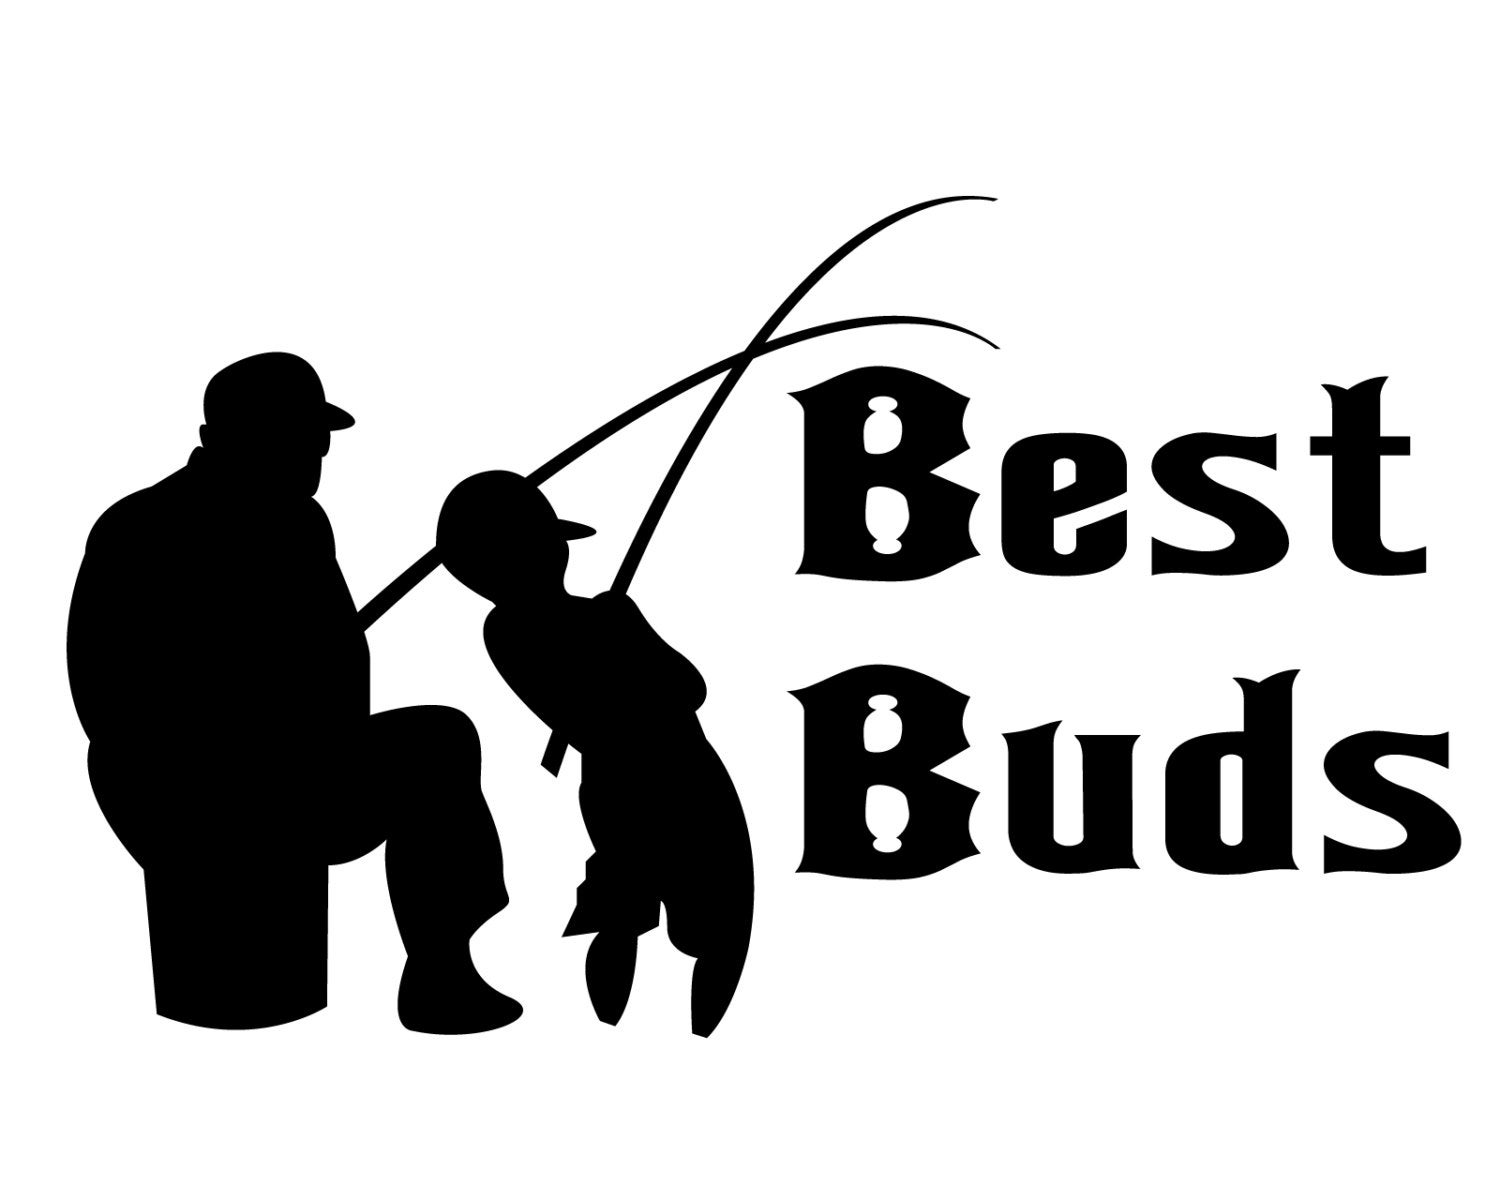 Fishing decal best buds decal fishing lover sticker for Free fishing stickers